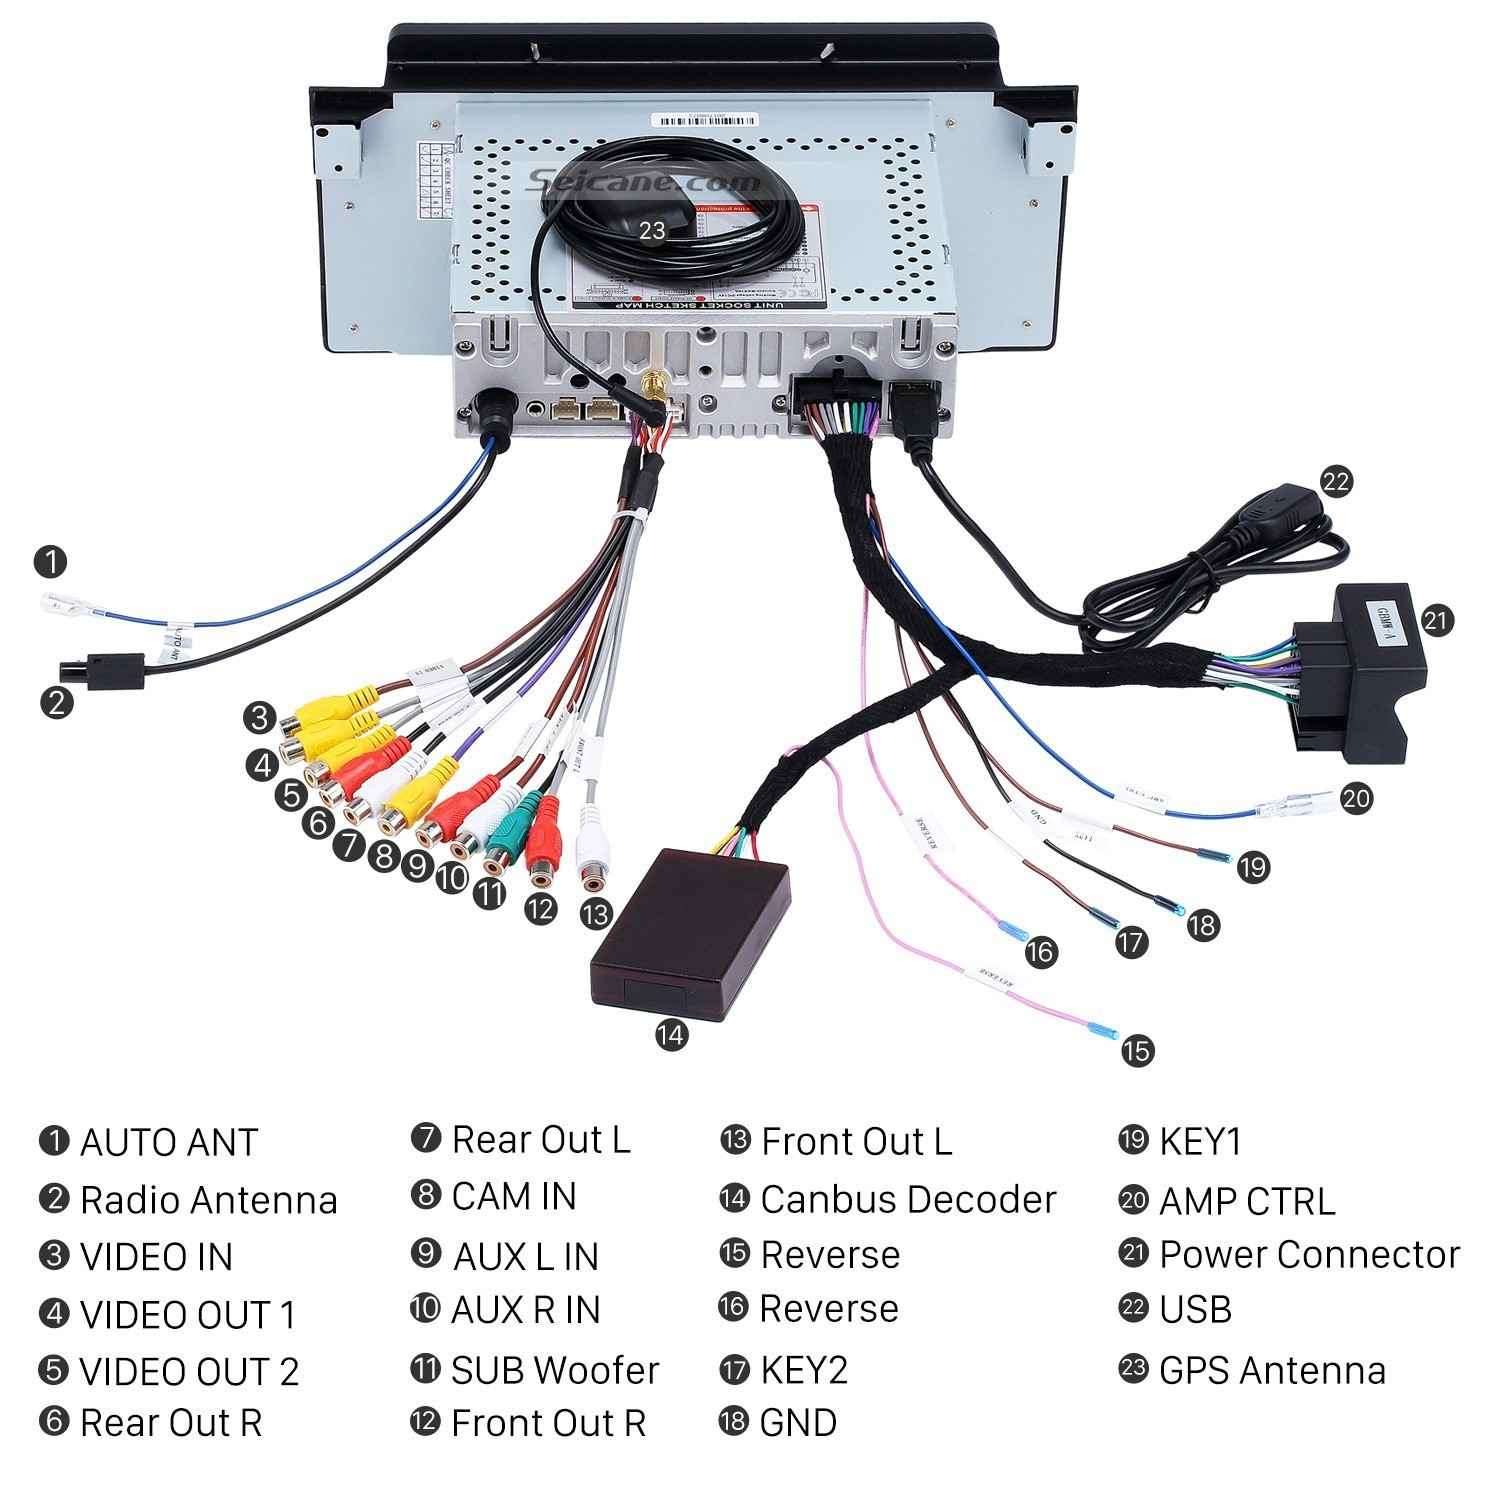 Light Wiring Diagram Best Inch 2000 2007 Bmw X5 E53 3 0i 3 0d 4 4i 4 6is 4 8is